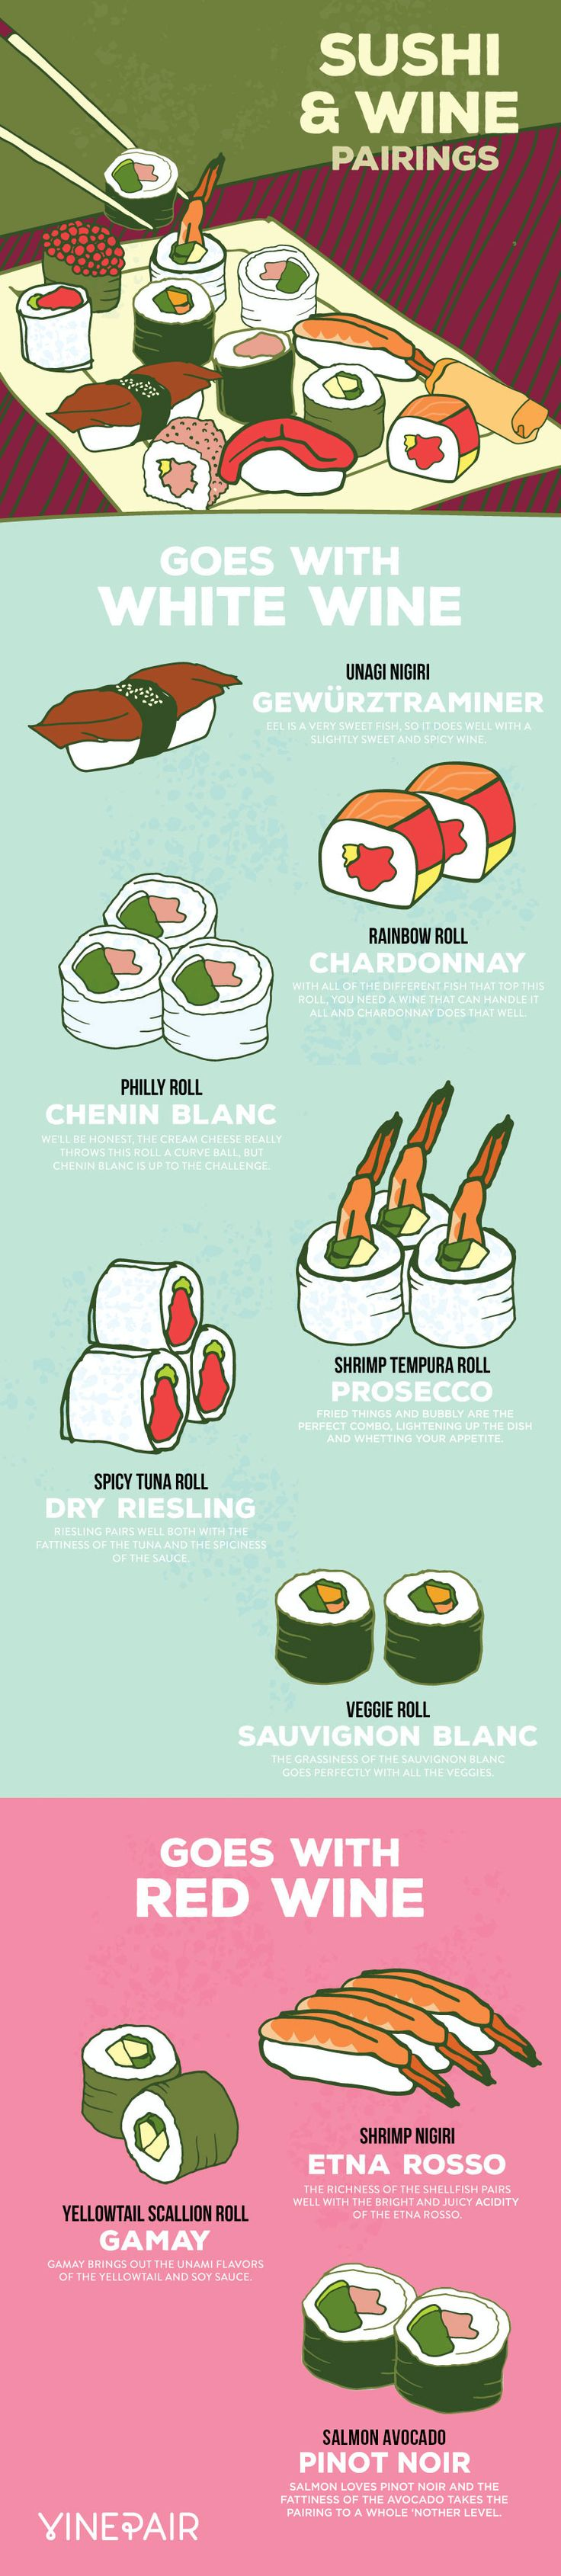 The Perfect Wine Pairing For Your Favorite Sushi [Infographic] | Bon Viveur Gastronomy | Pinterest | Wine, Wines and Sushi